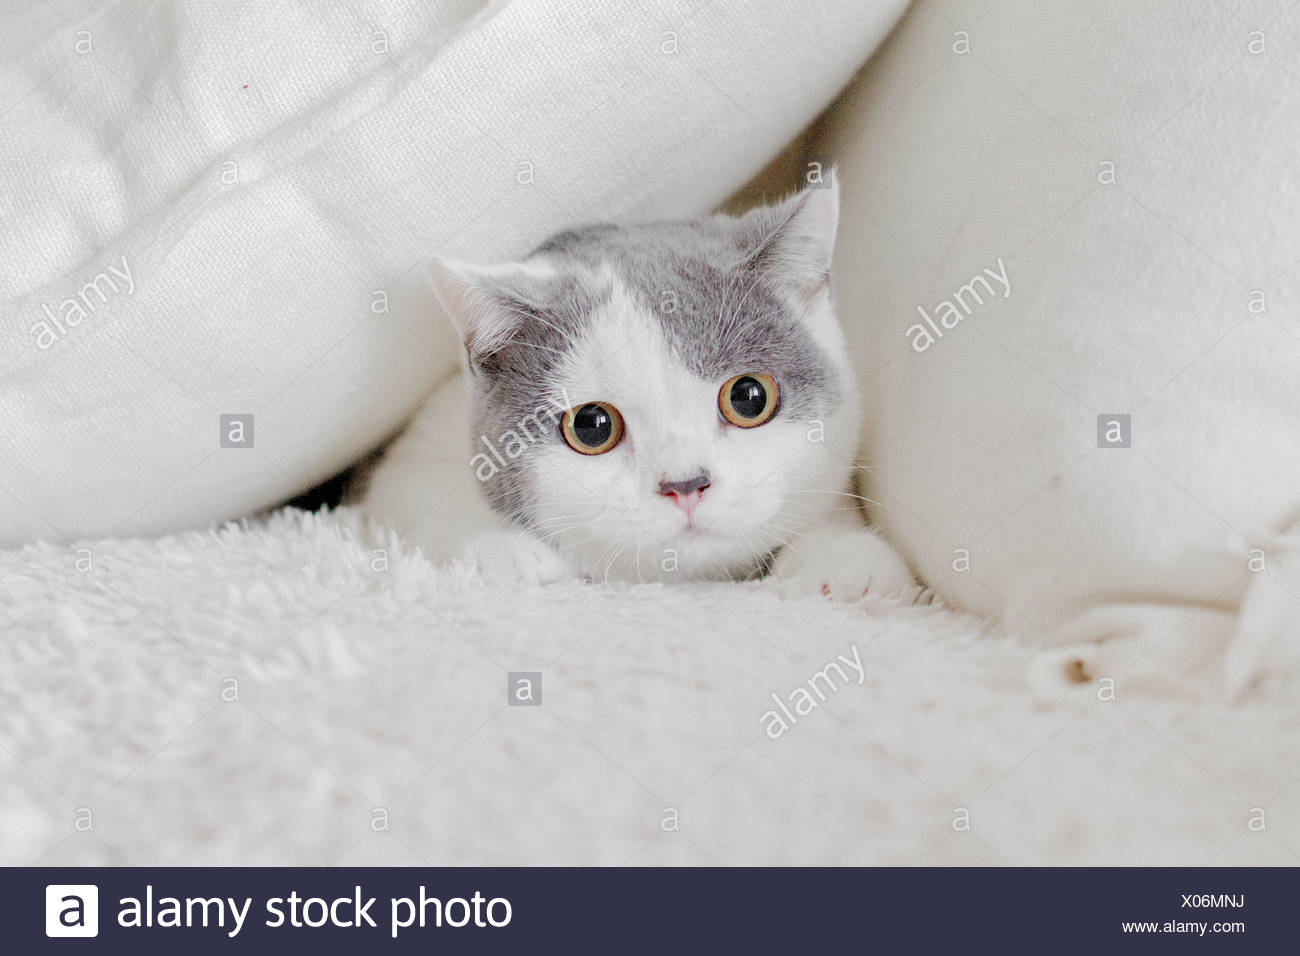 Cat hiding in pillows - Stock Image